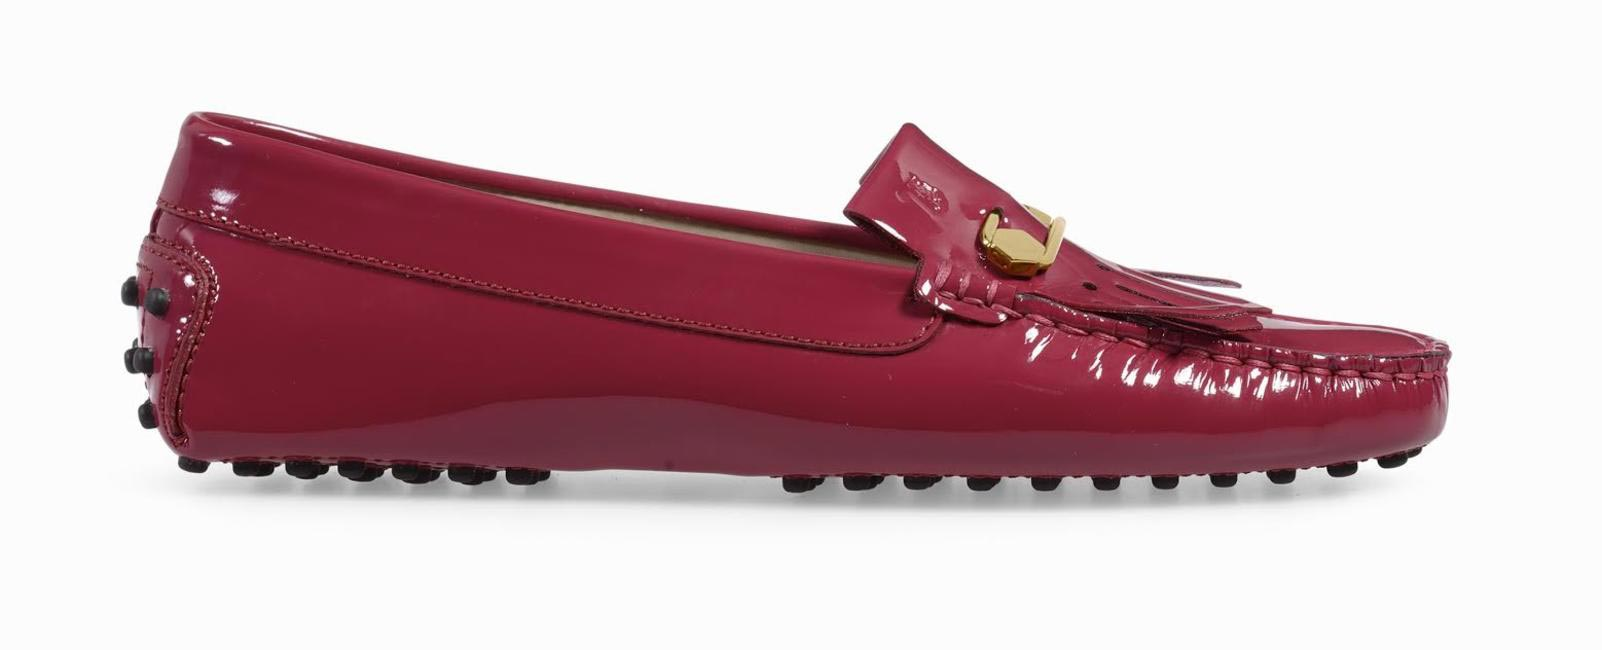 Gommino Spilla Loafers